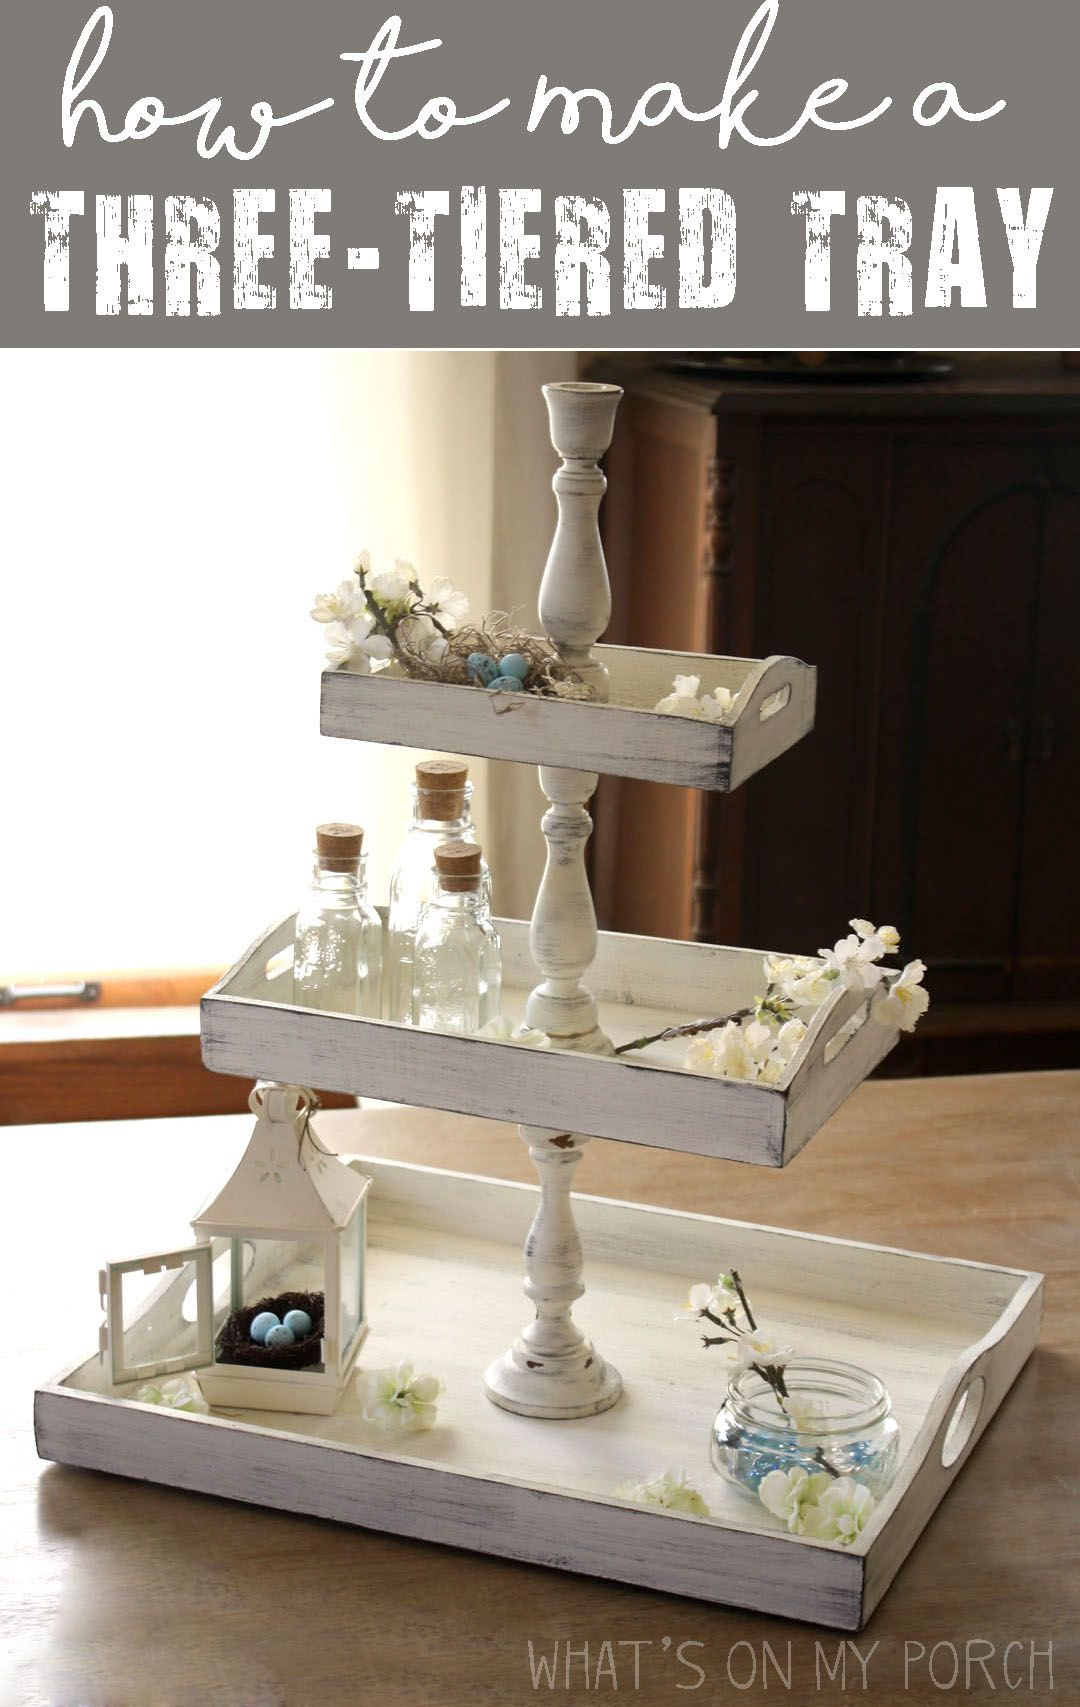 How To Make A Three Tiered Tray Farmhouse Style What S On My Porch Diy Home Decor Diy Decor Decor